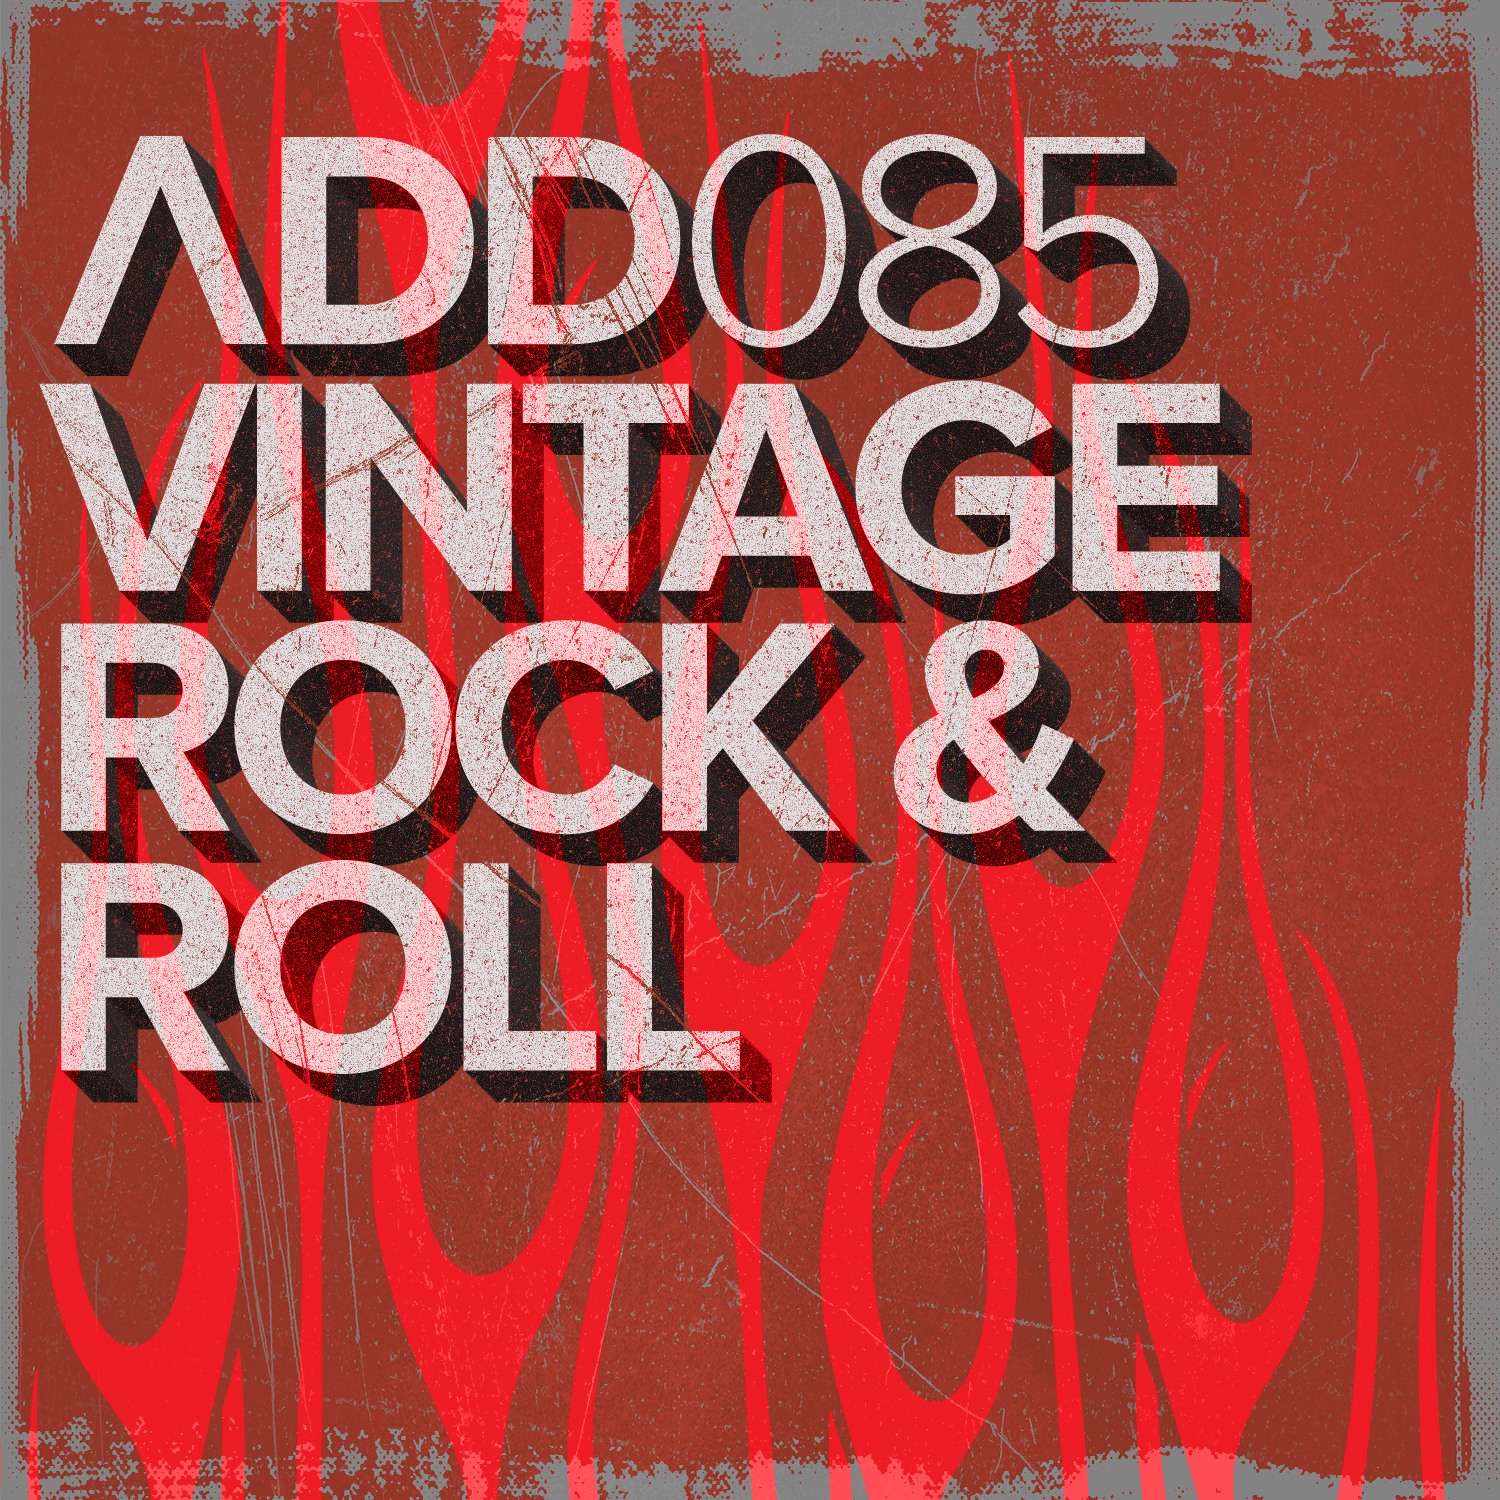 ADD085 VINTAGE ROCK AND ROLL